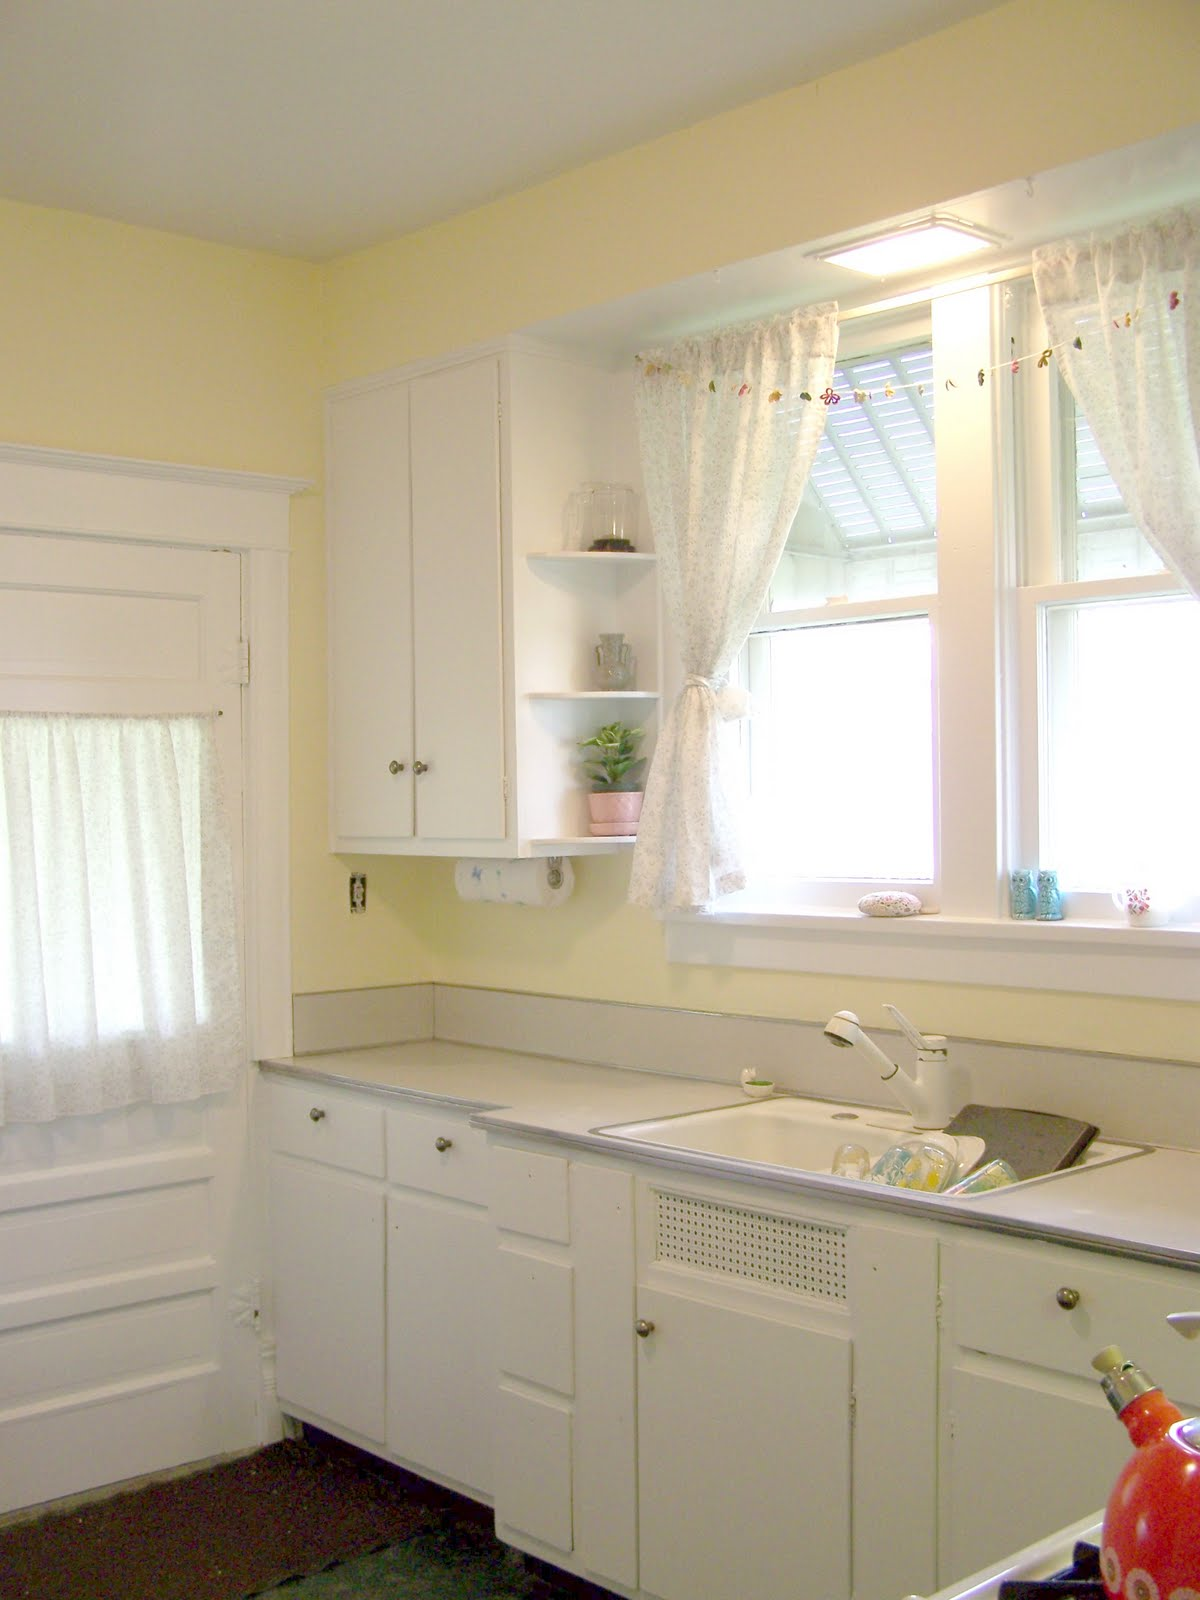 Ponder stitch kitchen before and after photos for Butter cream colored kitchen cabinets